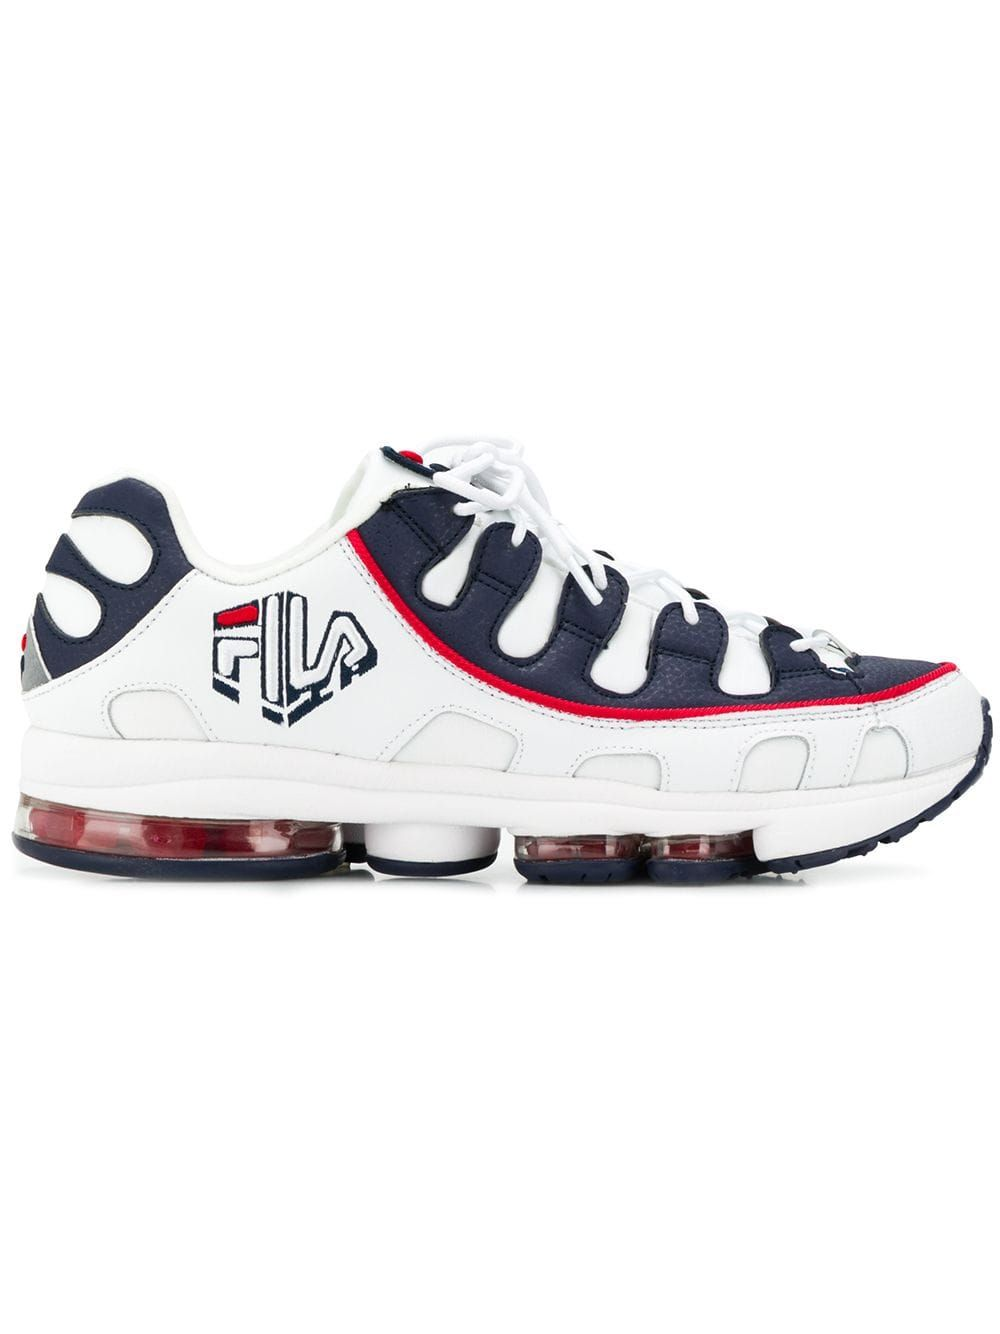 Silva sneakers | Sneakers fashion, Sneakers, Lace up trainers